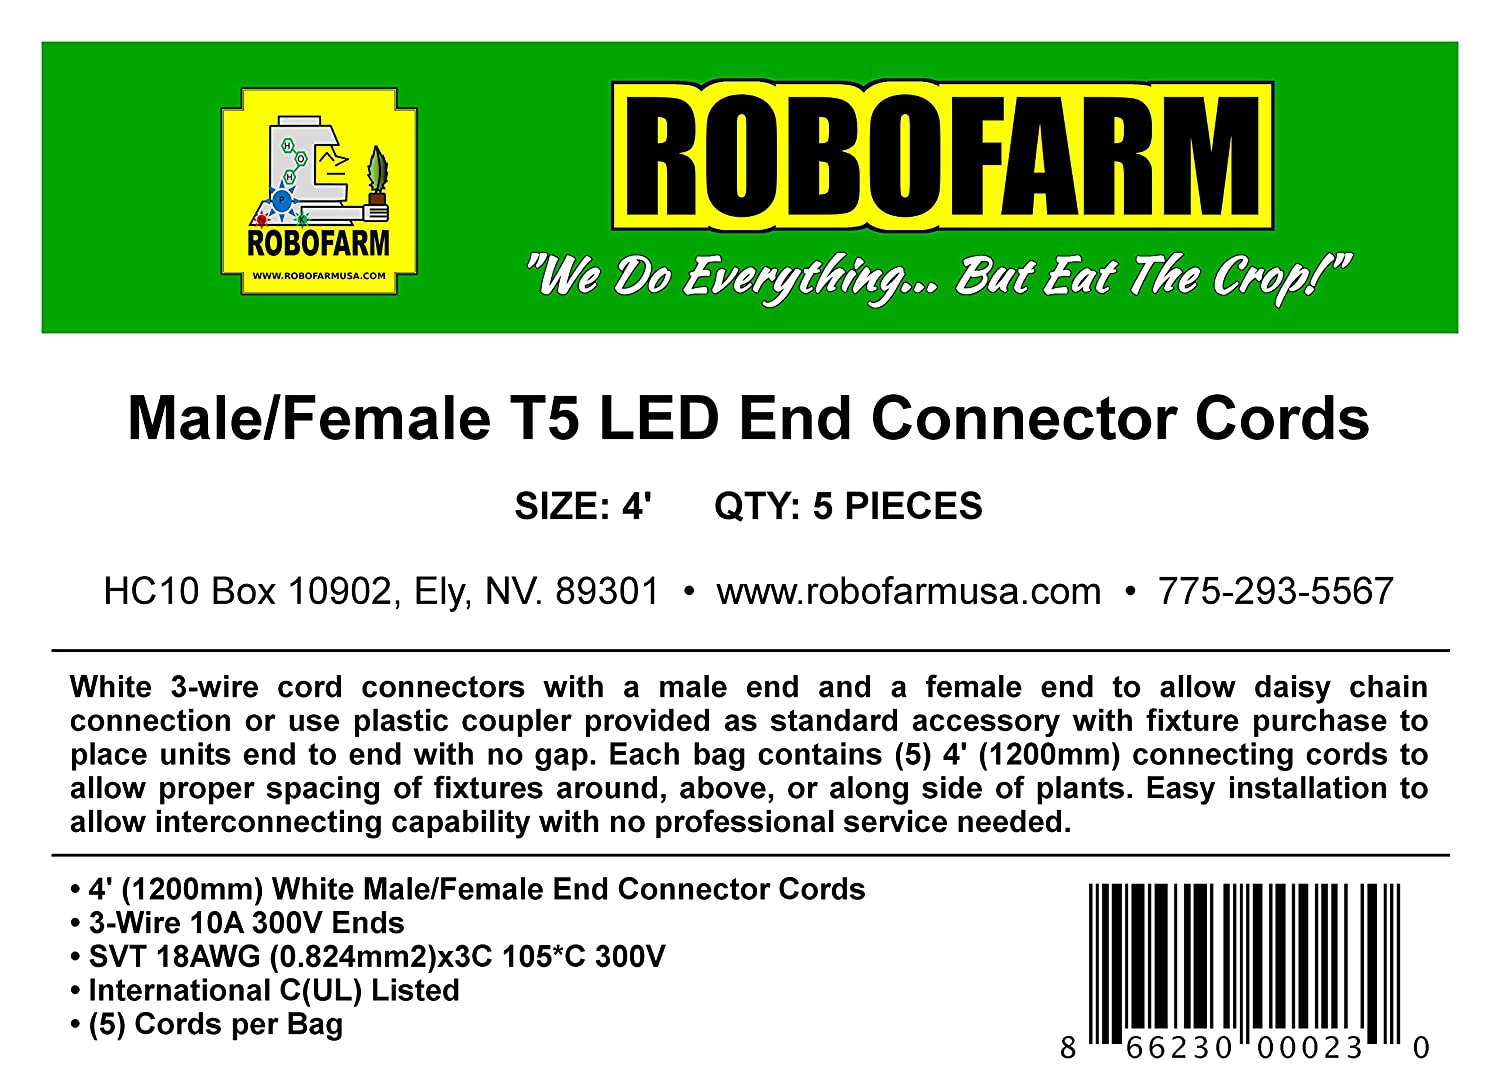 Wiring Diagram 3 Prong Male Plug End Schematic Diagrams A Amazon Com 4 Female T5 Led Connector Cords For Robofarm Wire Range Outlet